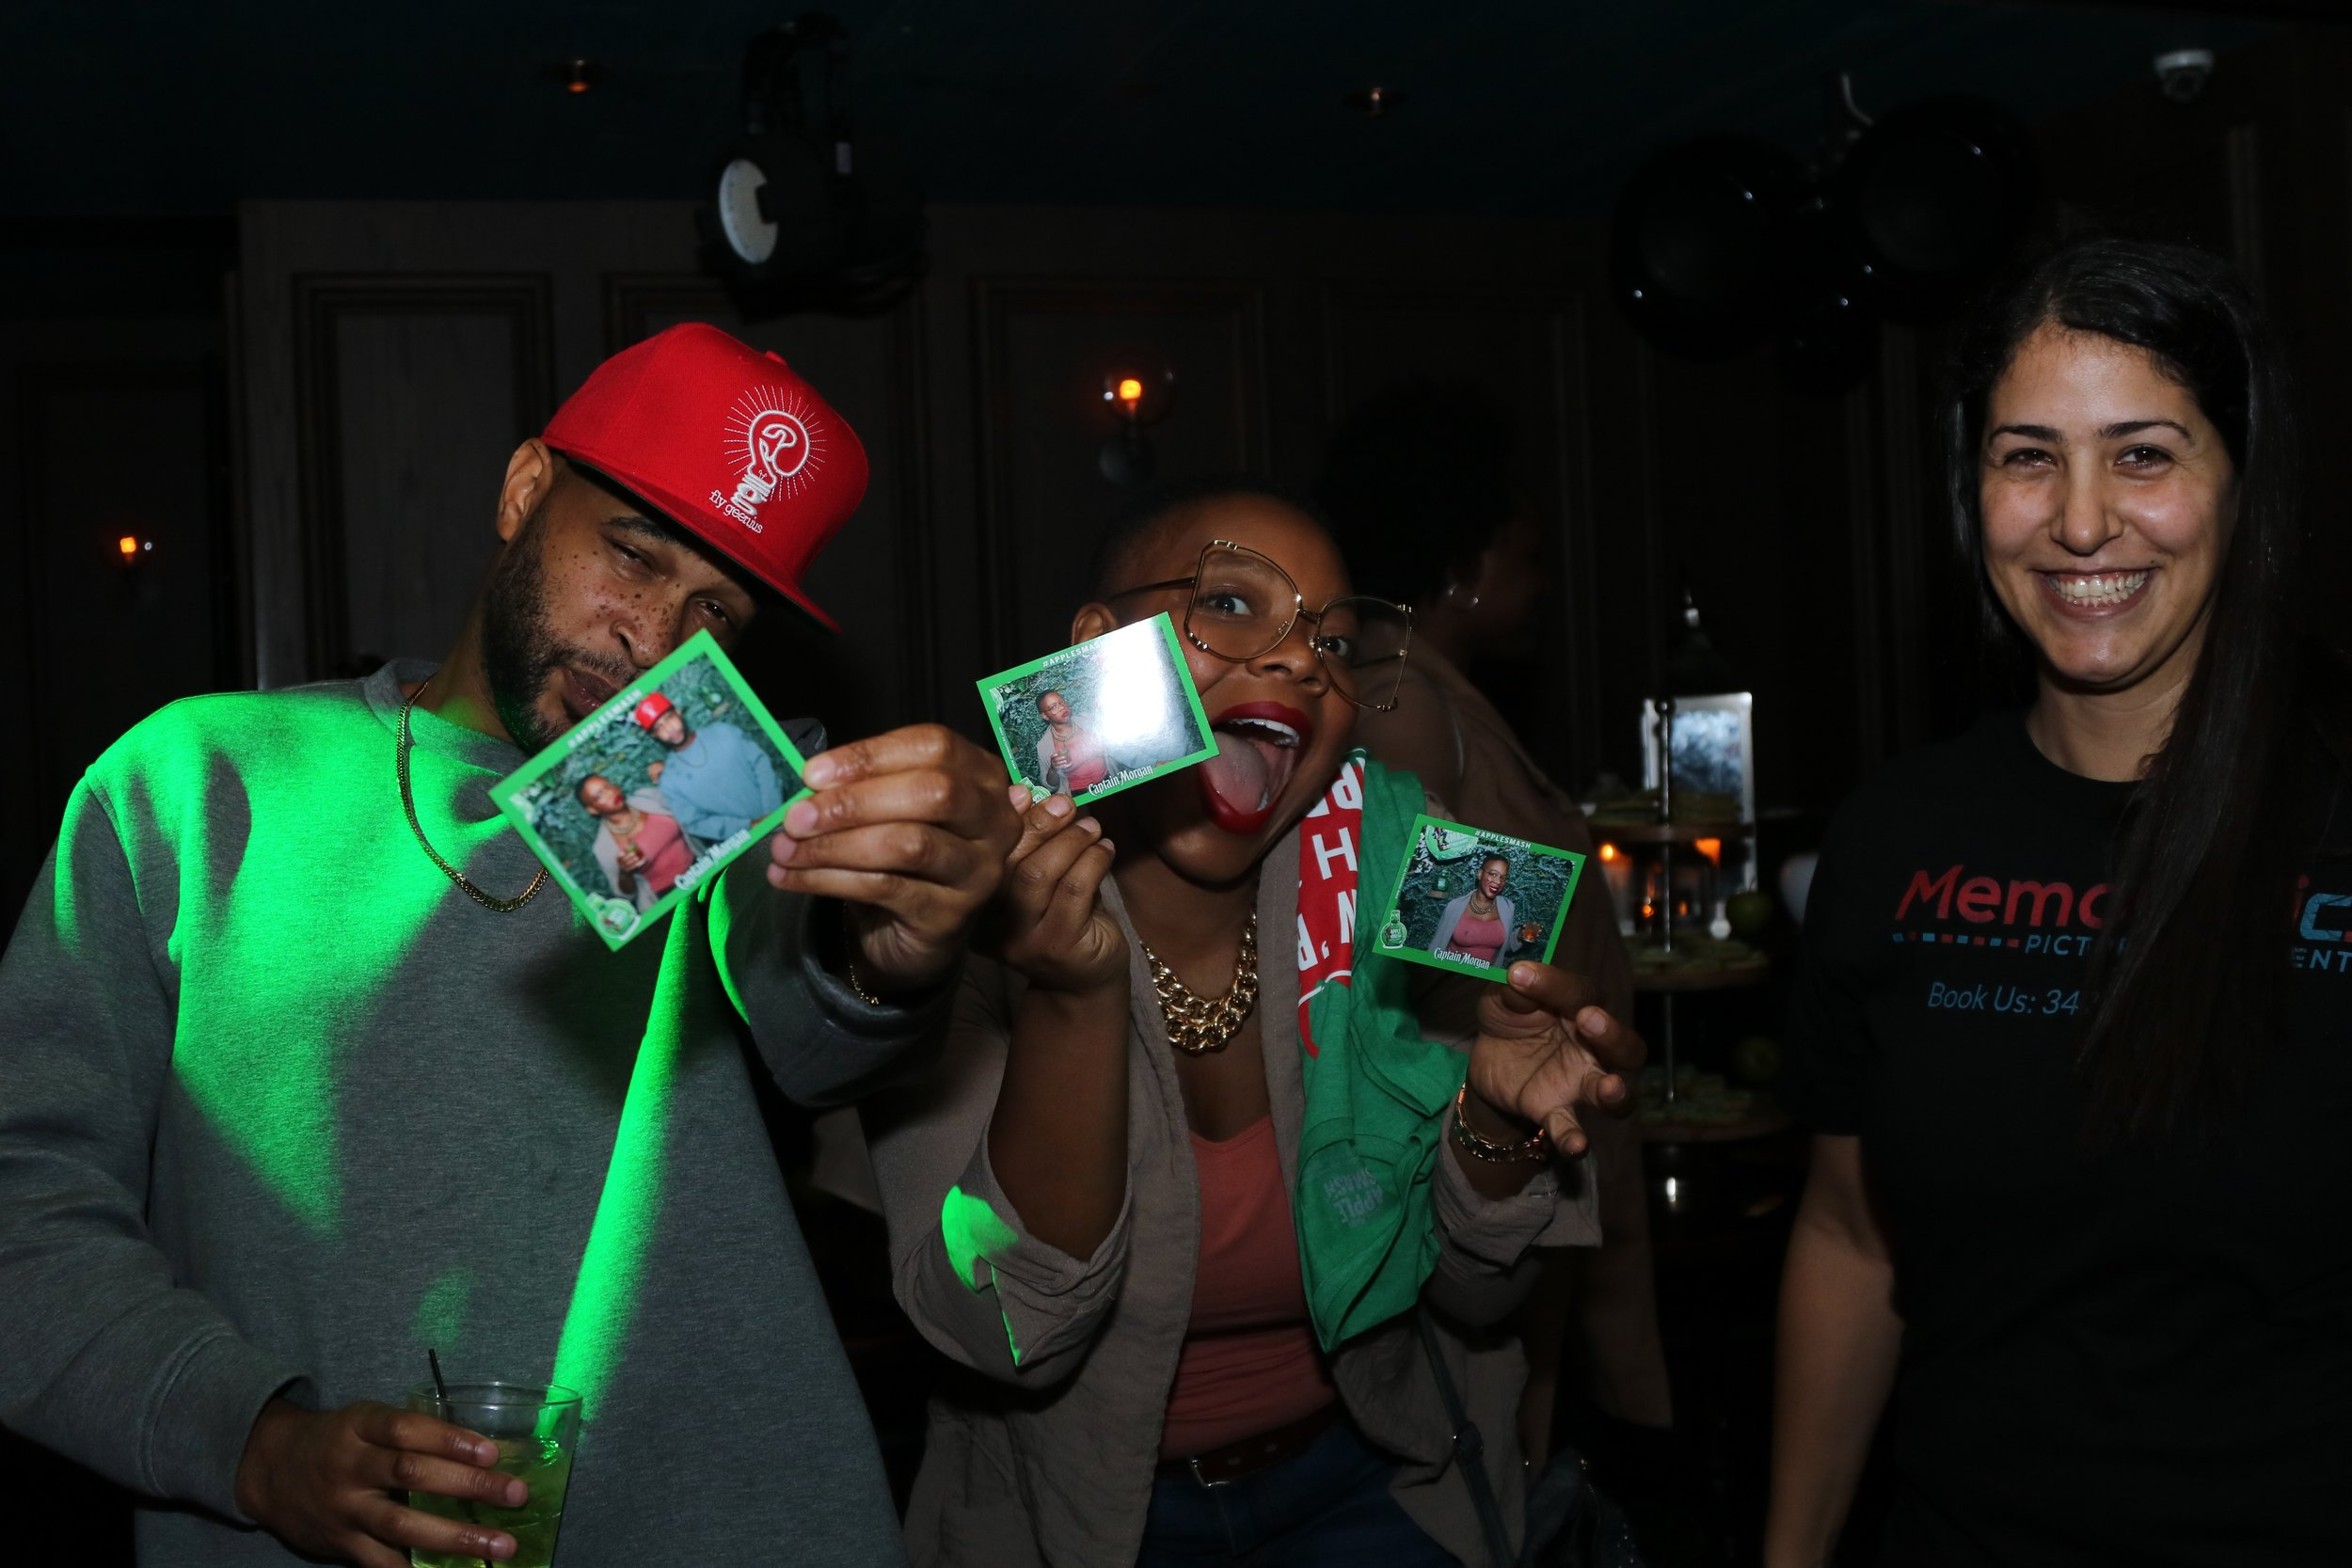 Event_Photo_Magnet_Photographer_Product_Launch_Party.JPG